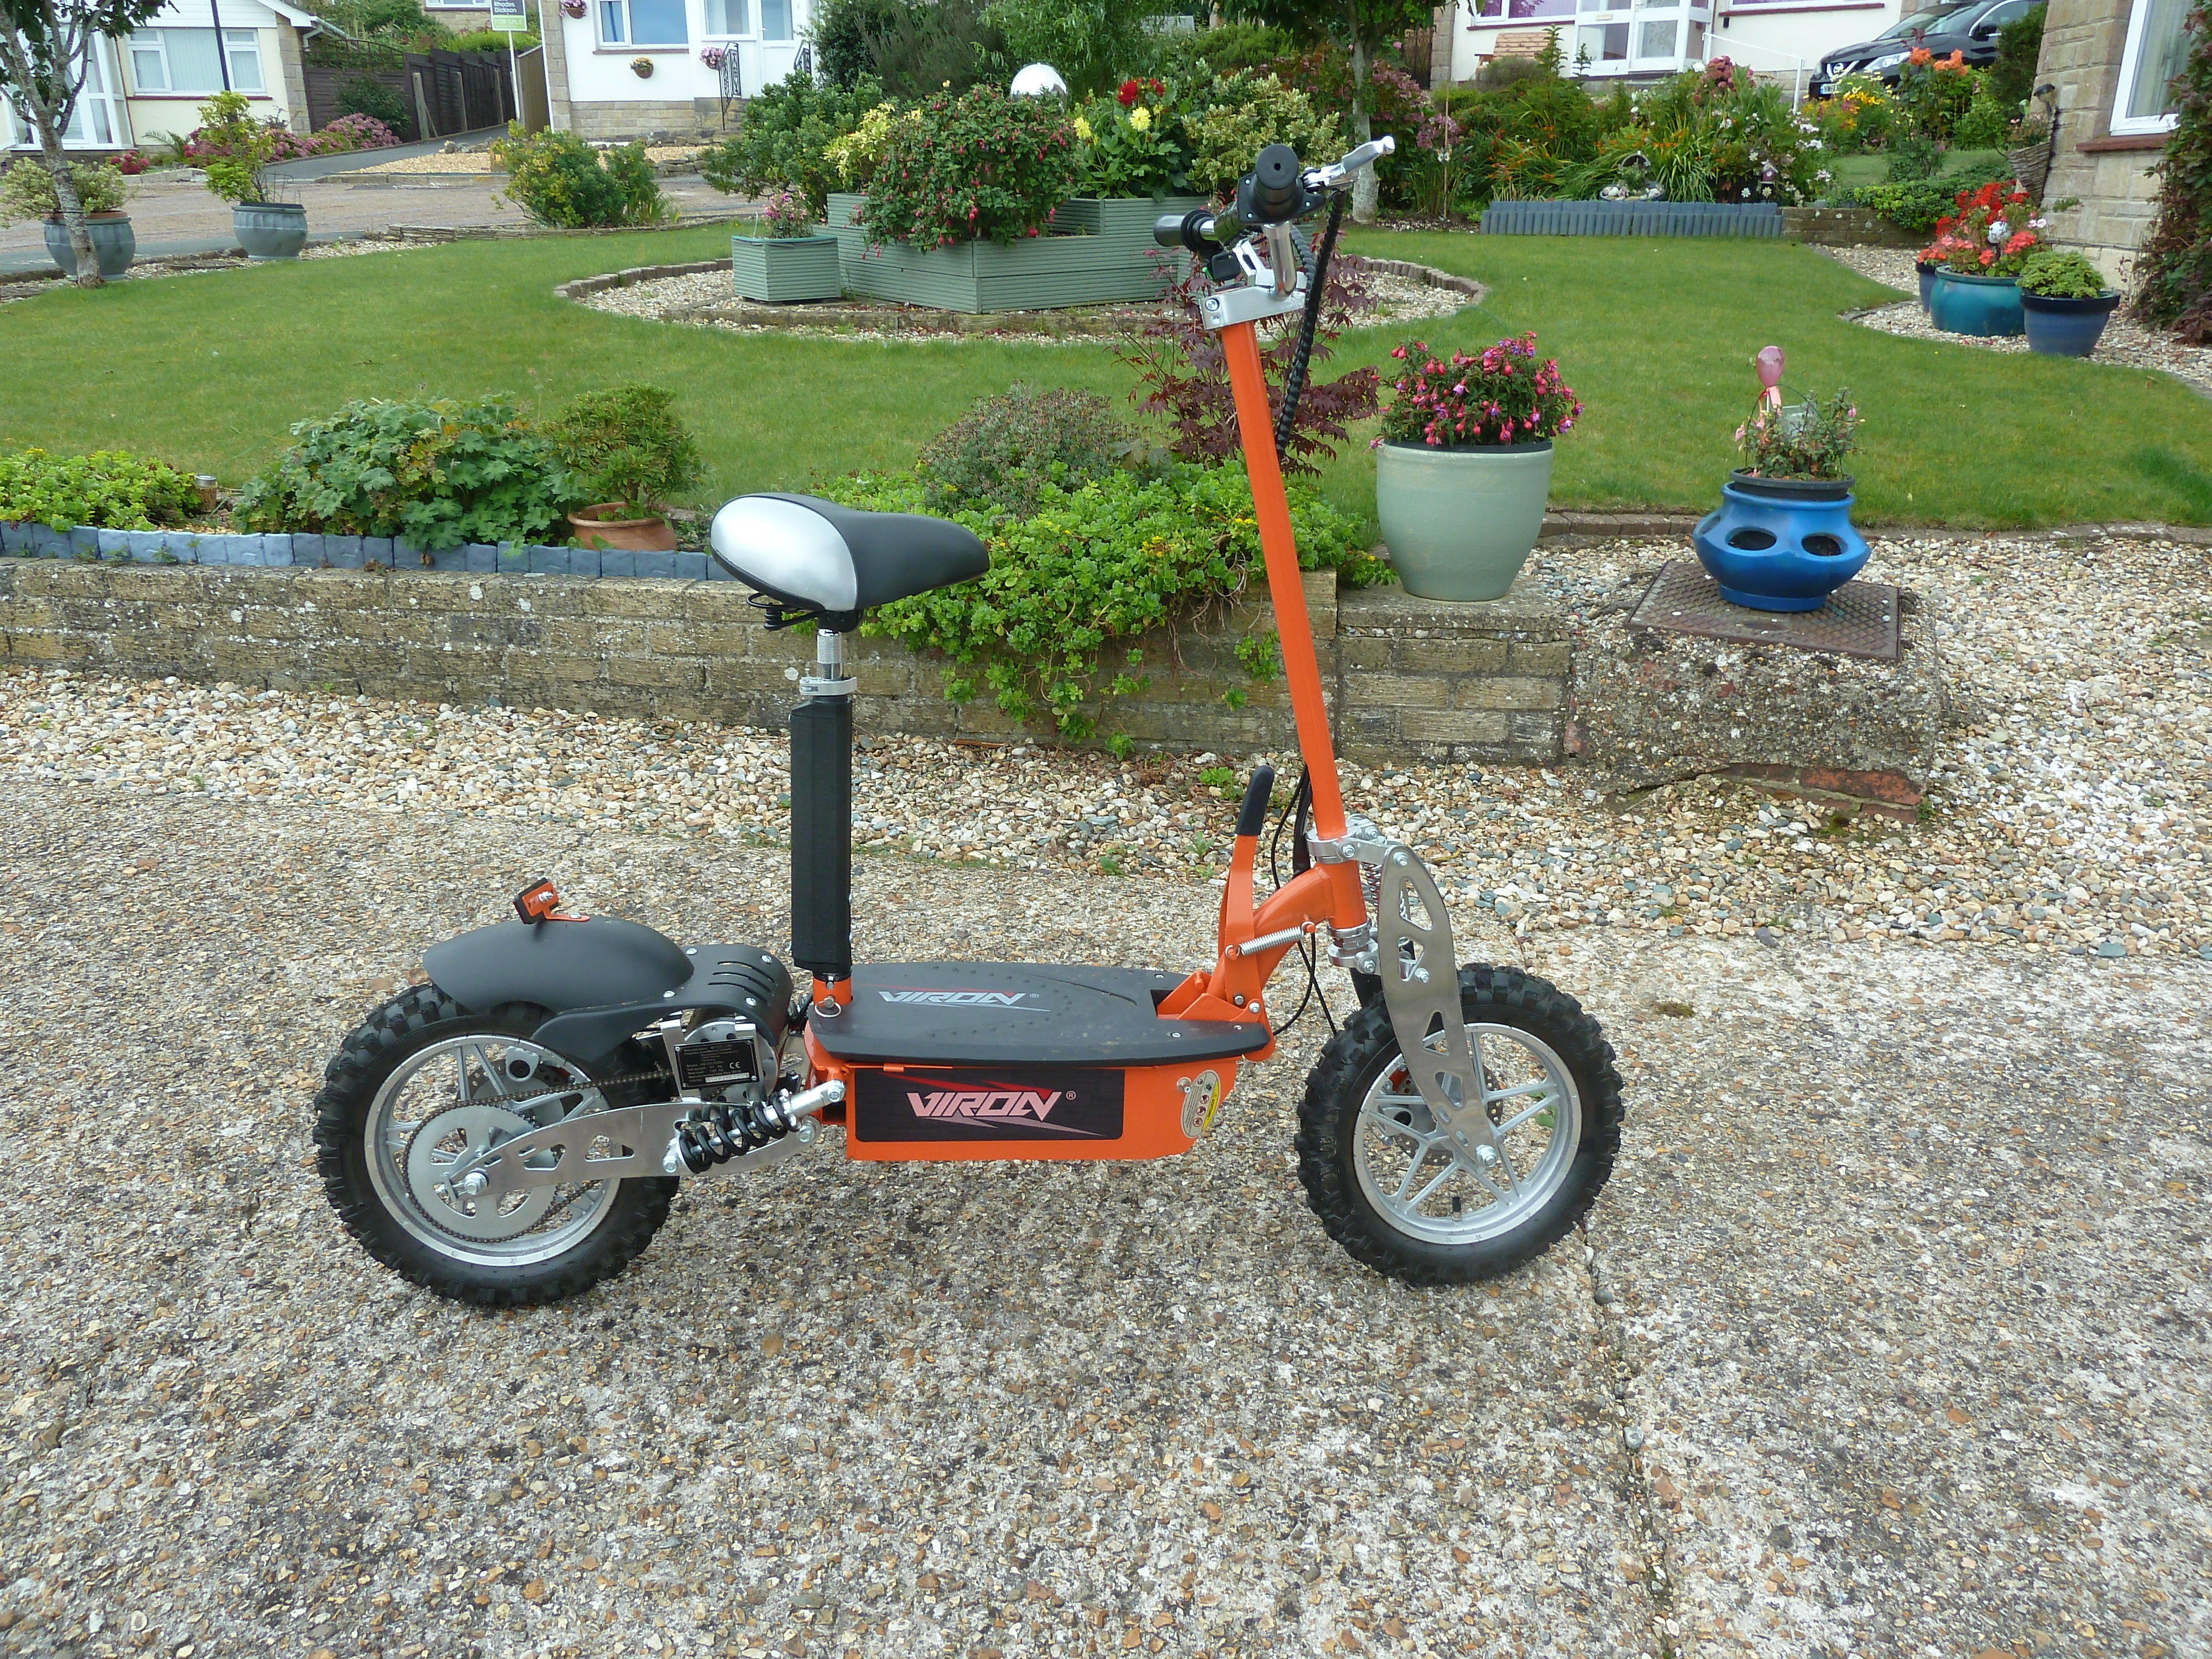 Viron 1000w electric scooter - Ryde | Wightbay